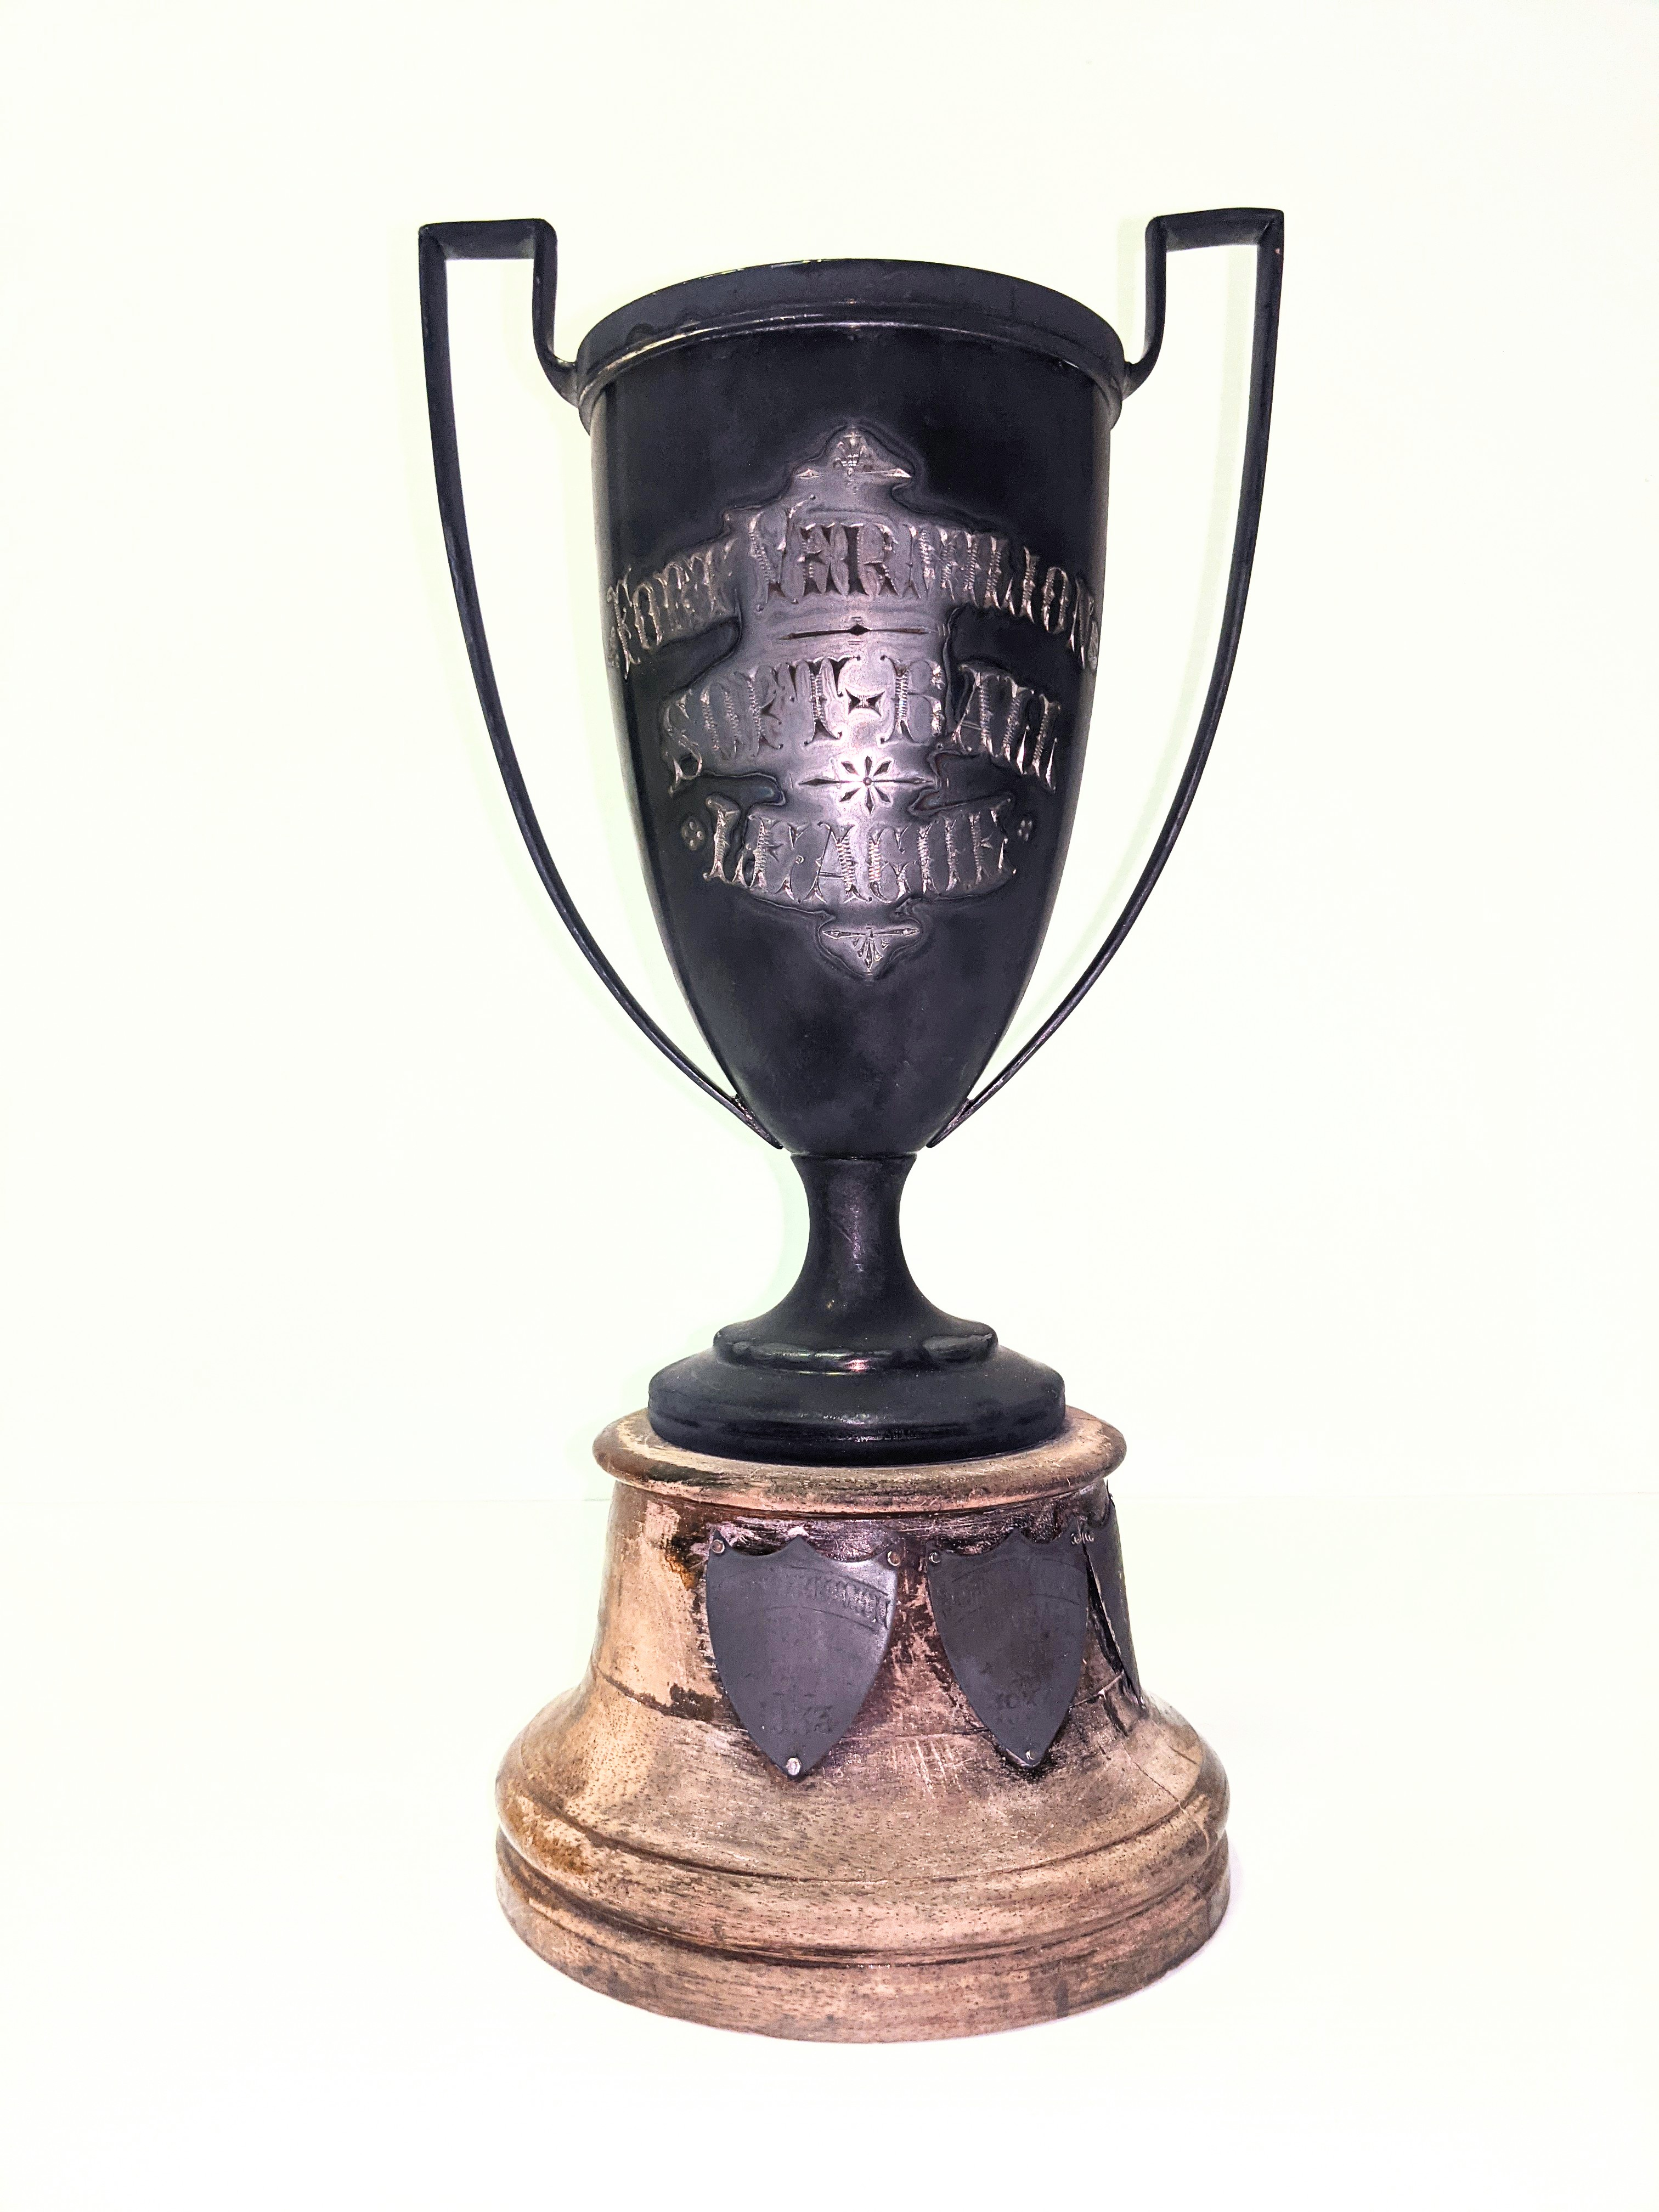 """This is a sterling silver trophy (that badly needs polishing) for the """"Fort Vermilion Soft Ball League"""". The 3 crests at the bottom detail """"Fort Vermilion Softball Club"""" as champions in 1933 and """"Stoney Point Softball Club"""" as champions in 1934 + 1935. The original price of the trophy is noted on the bottom as $15.25  15/02/2021 2000.18.09 / Jones, Art"""